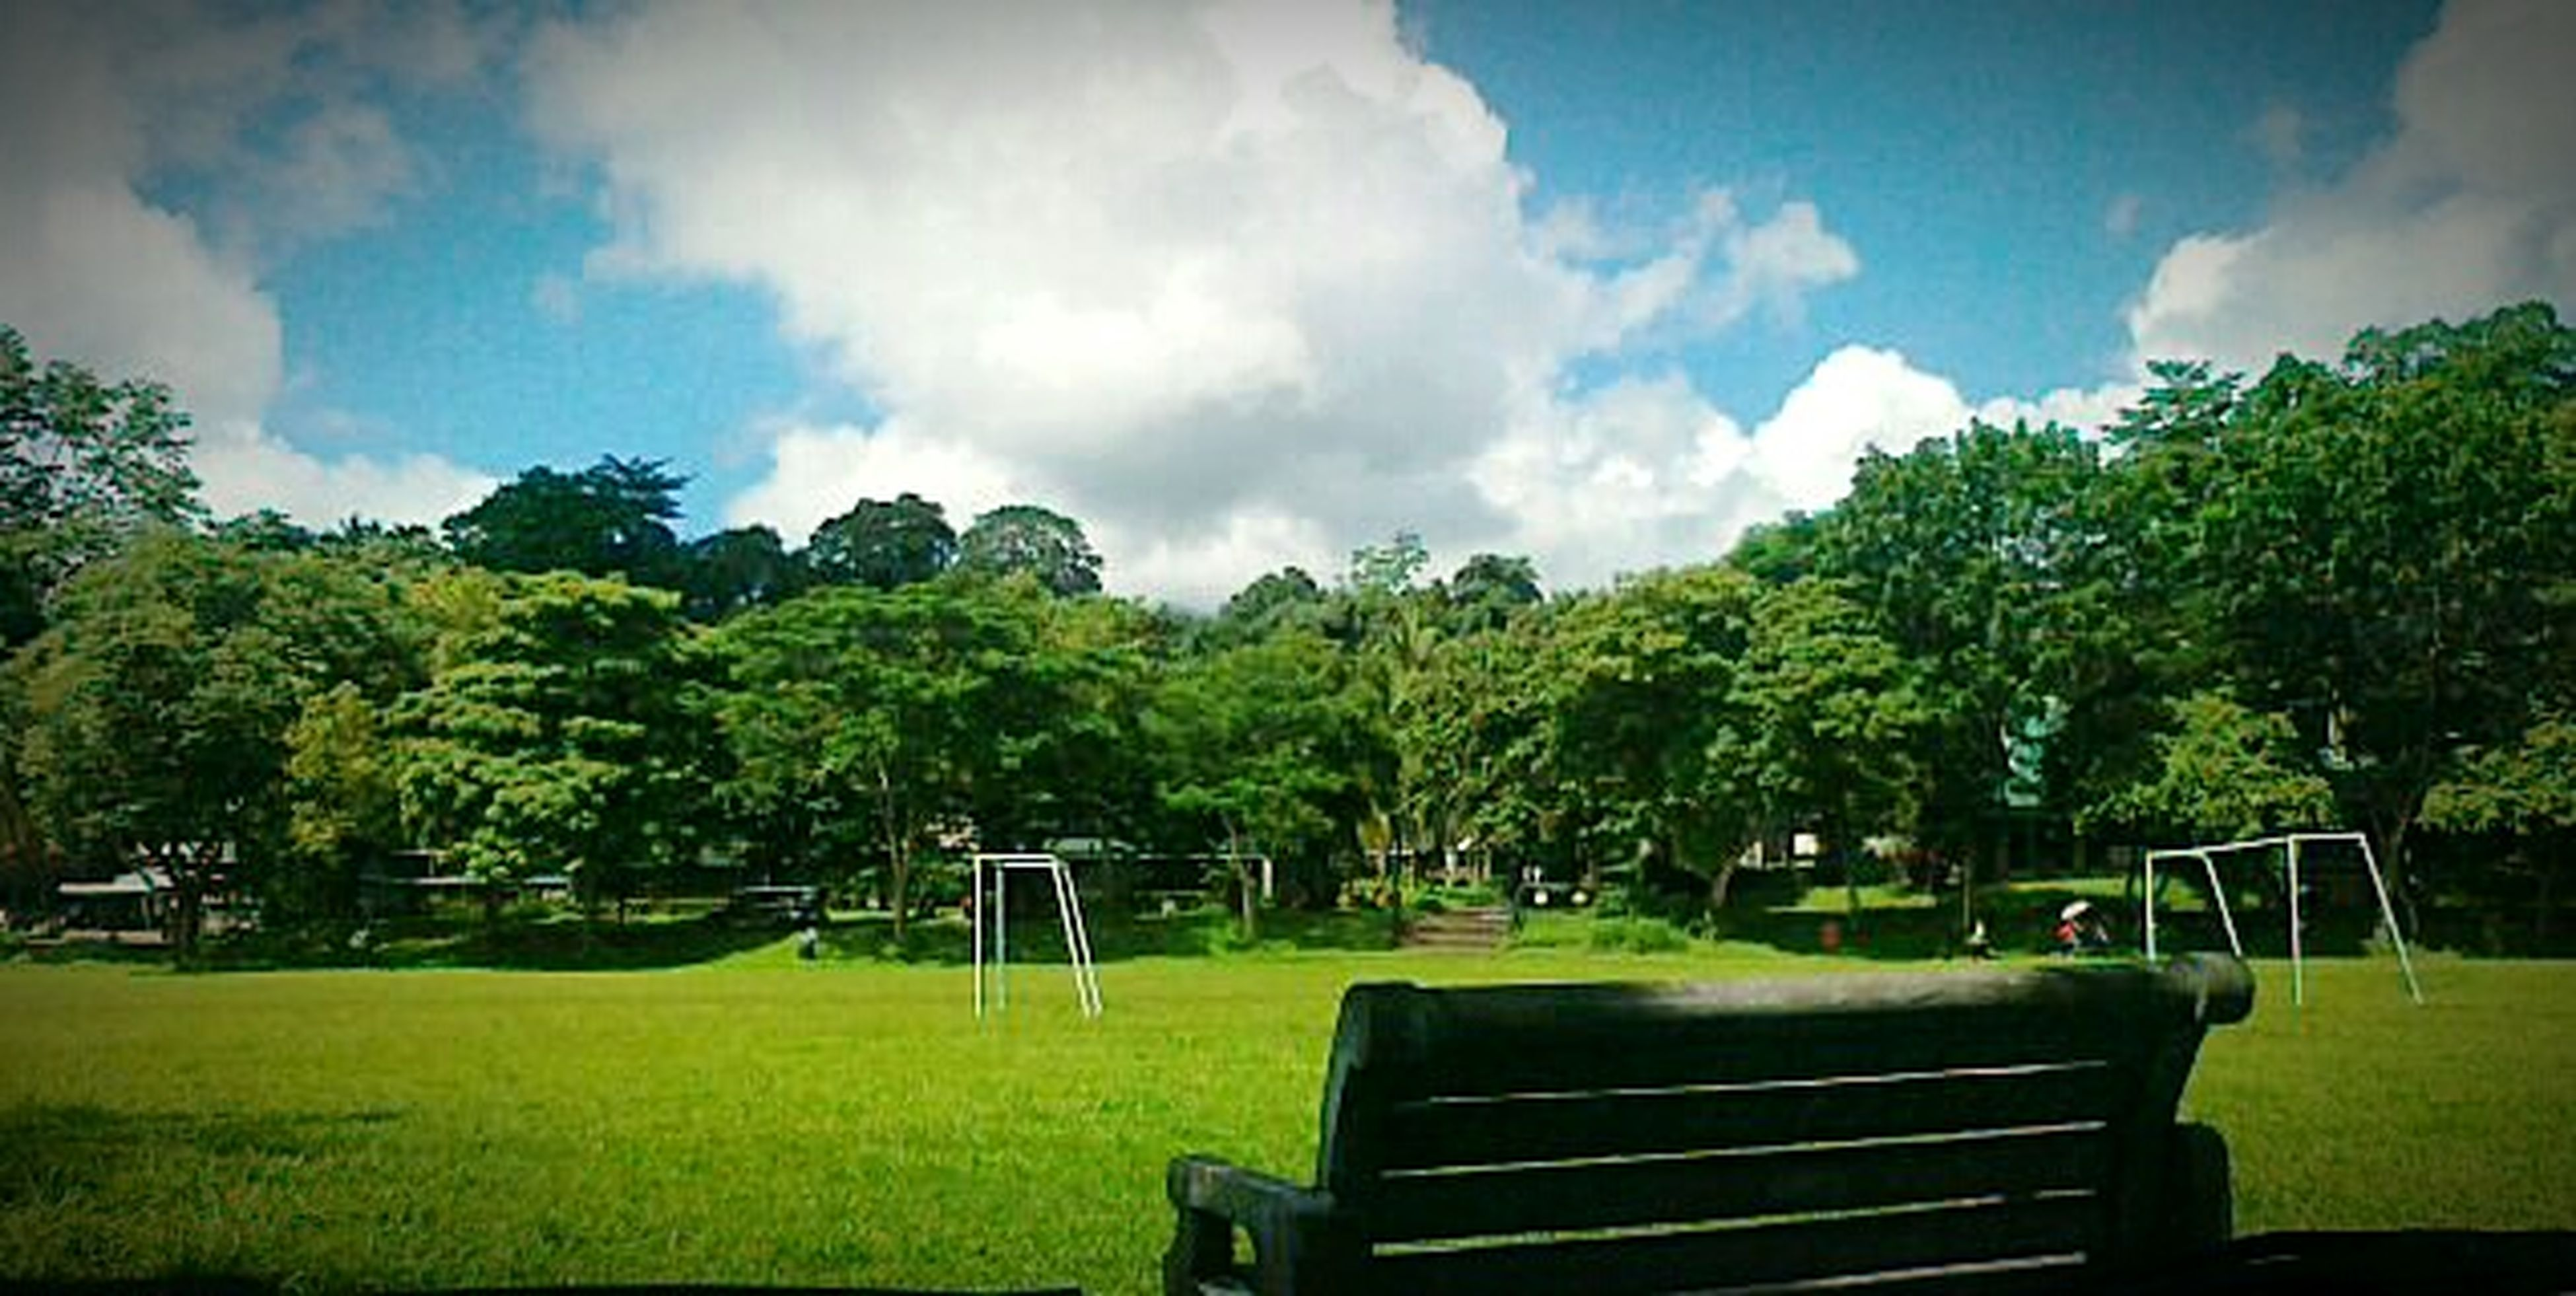 tree, grass, sky, green color, bench, cloud - sky, park - man made space, tranquility, cloud, nature, tranquil scene, relaxation, growth, beauty in nature, scenics, lawn, park, field, park bench, landscape